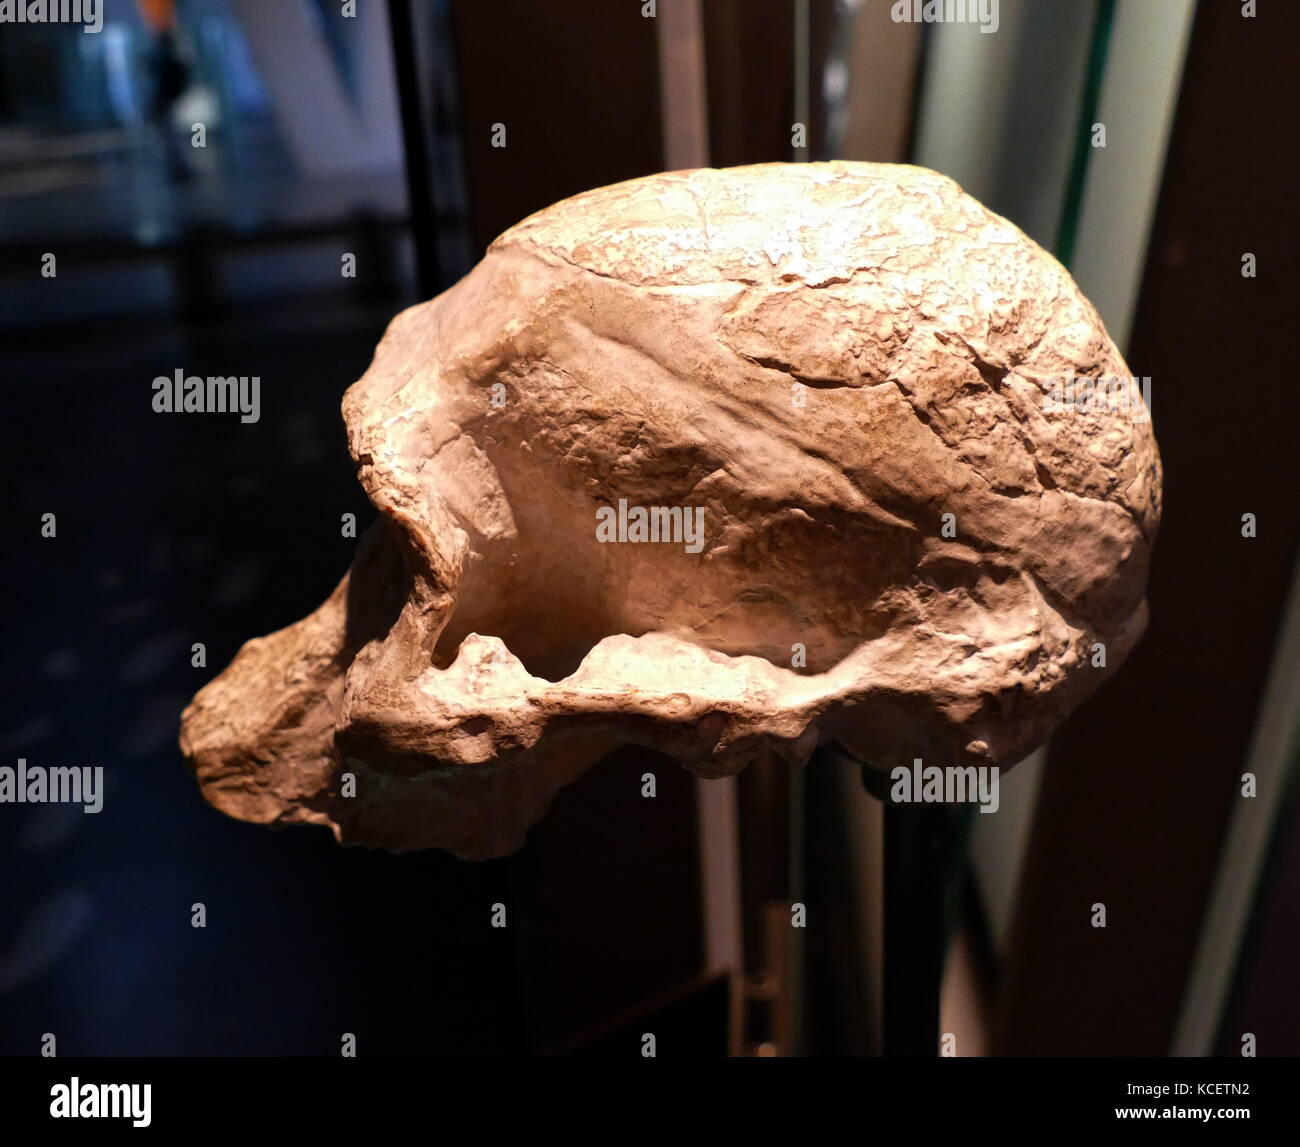 Australopithecus Africanus, an extinct (fossil) species of the australopithecines, the first of an early ape-form - Stock Image